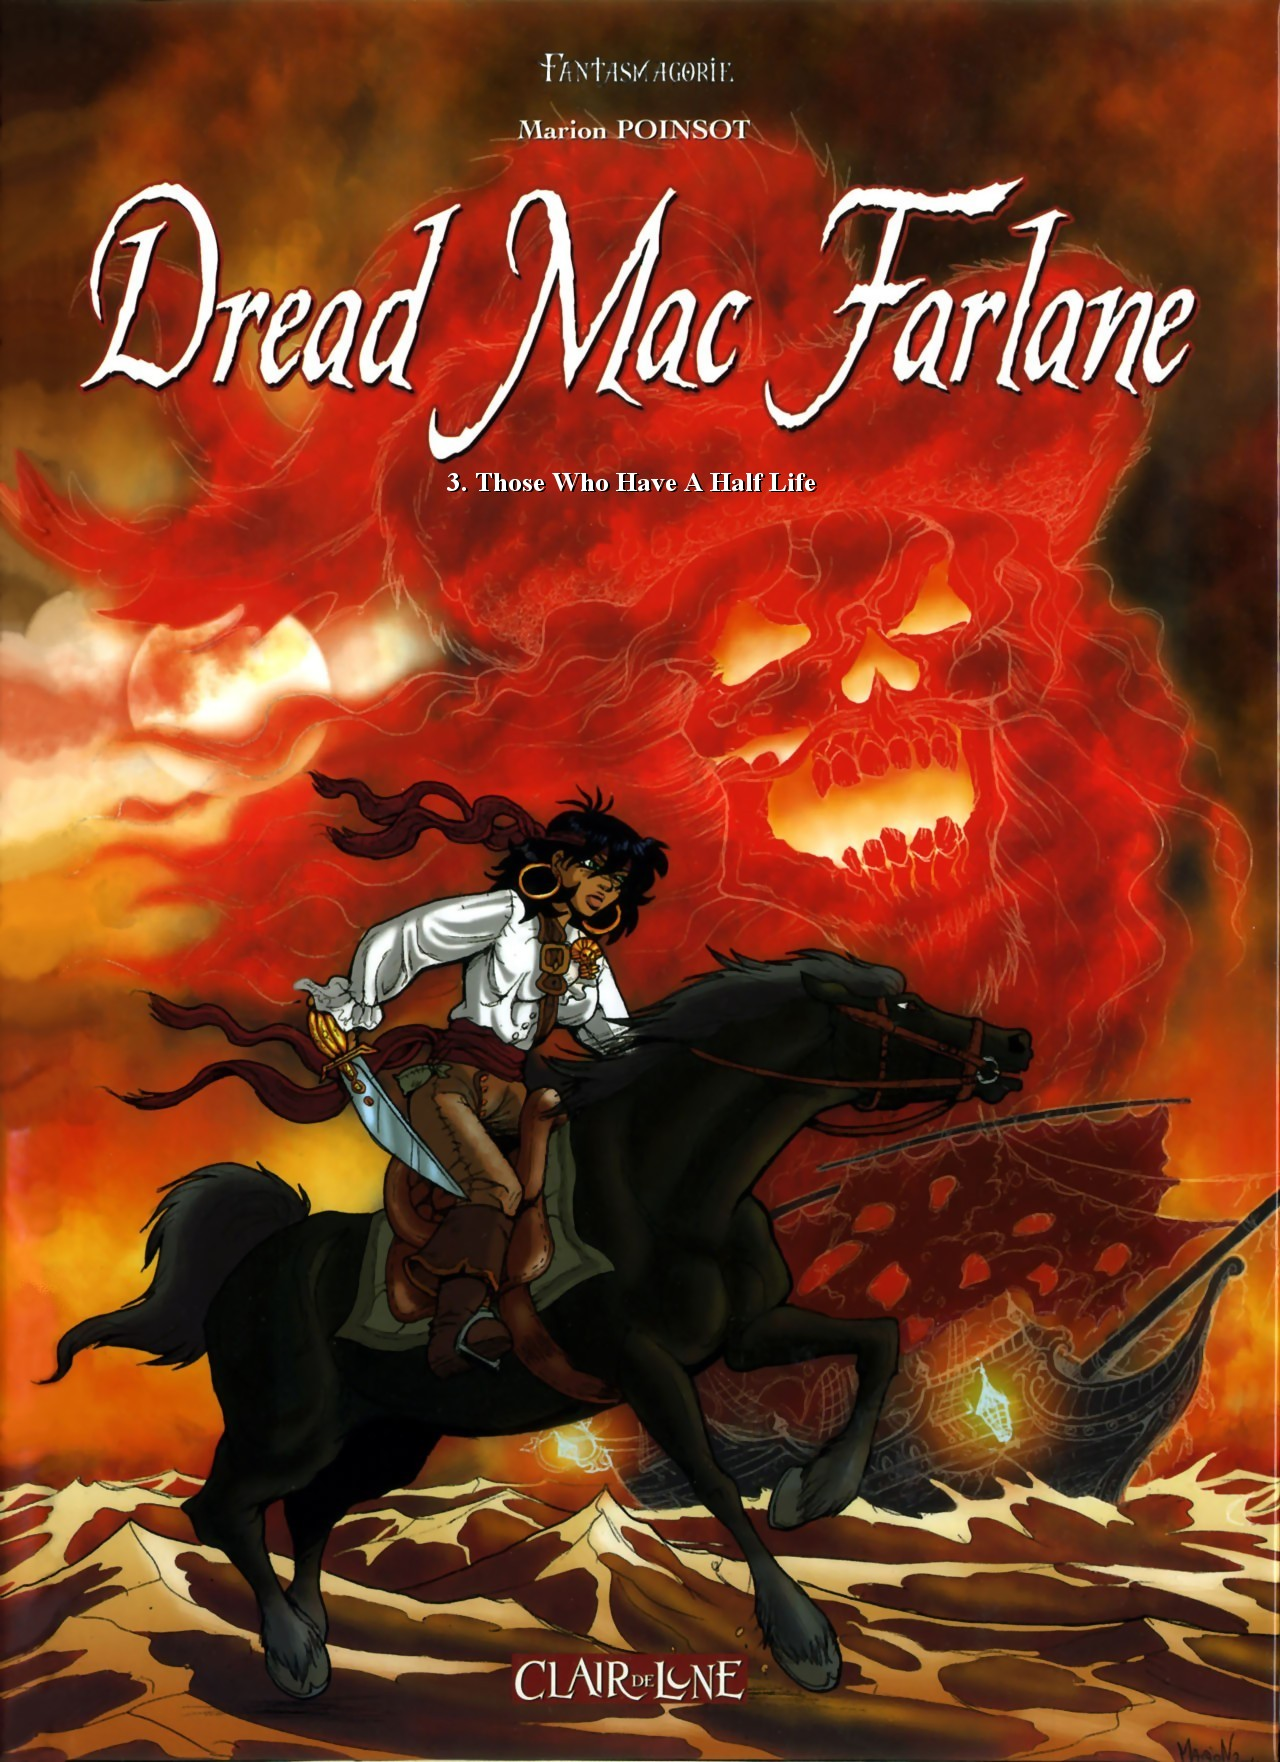 [Marion Poinsot] Dread Mac Farlane #3: Those Who Have A Half Life (Peter Pan) [English]